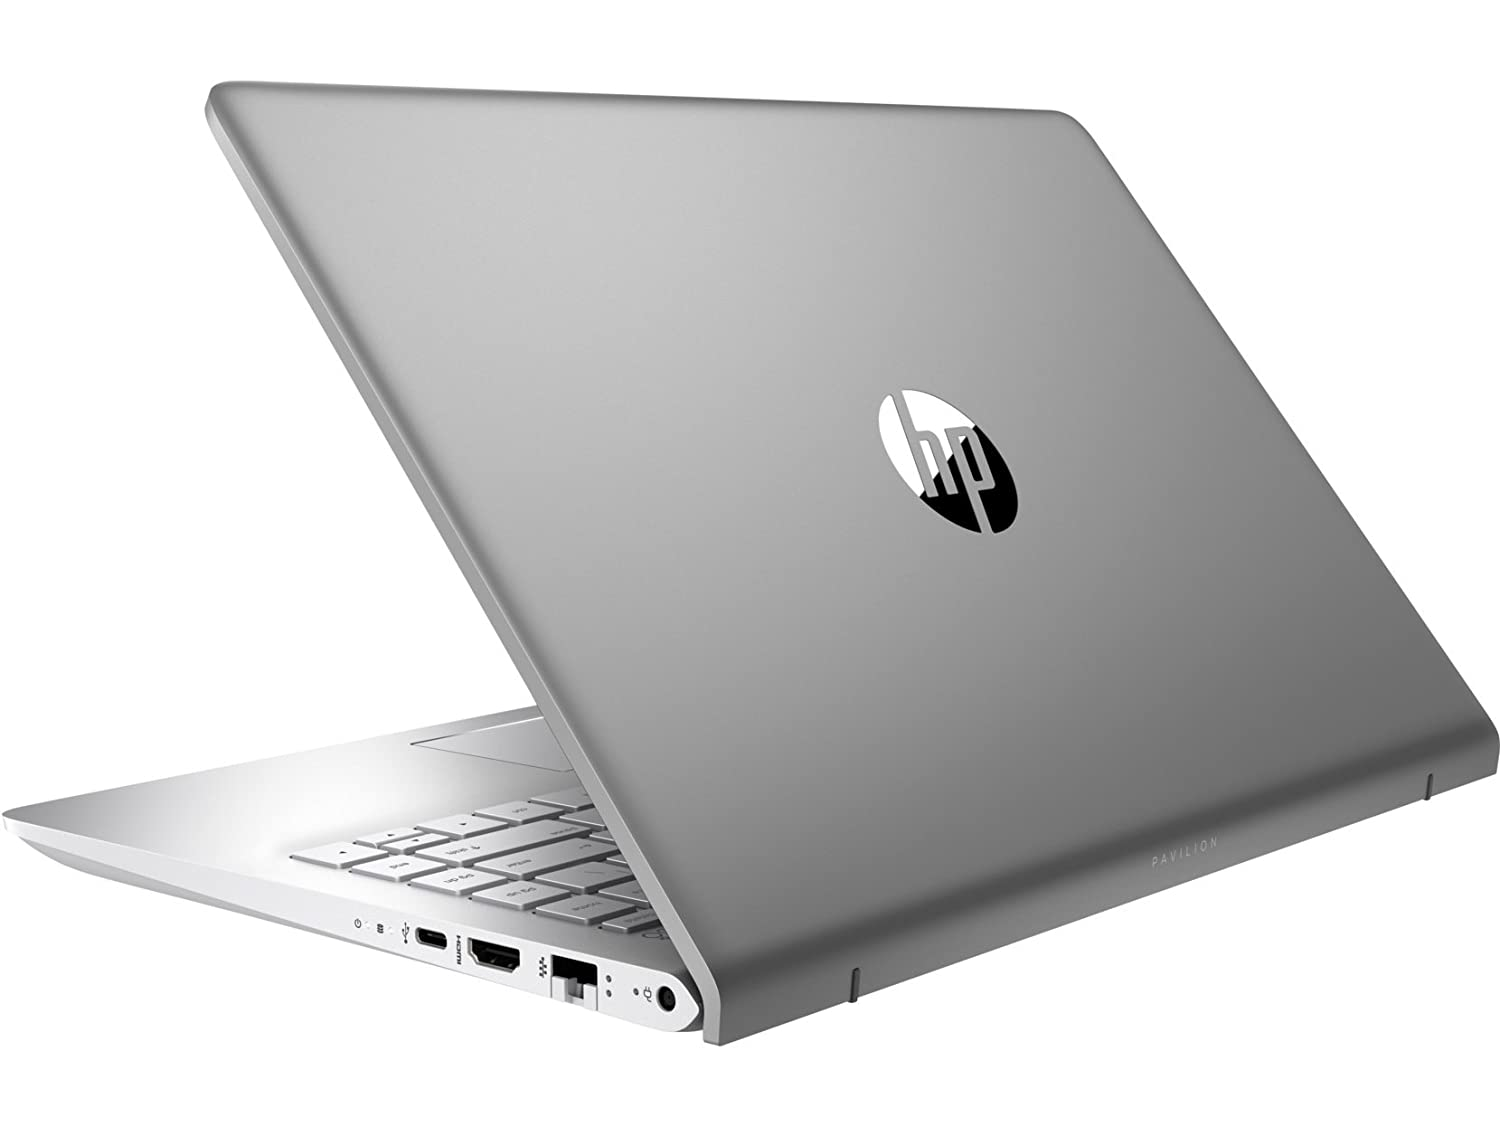 Buy Hp Pavilion 14 Bf148tx 2017 14 Inch Laptop Core I7 8gb 1tb Windows 10 Home Single Language 64 Integrated Graphics Silver Online At Low Prices In India Amazon In